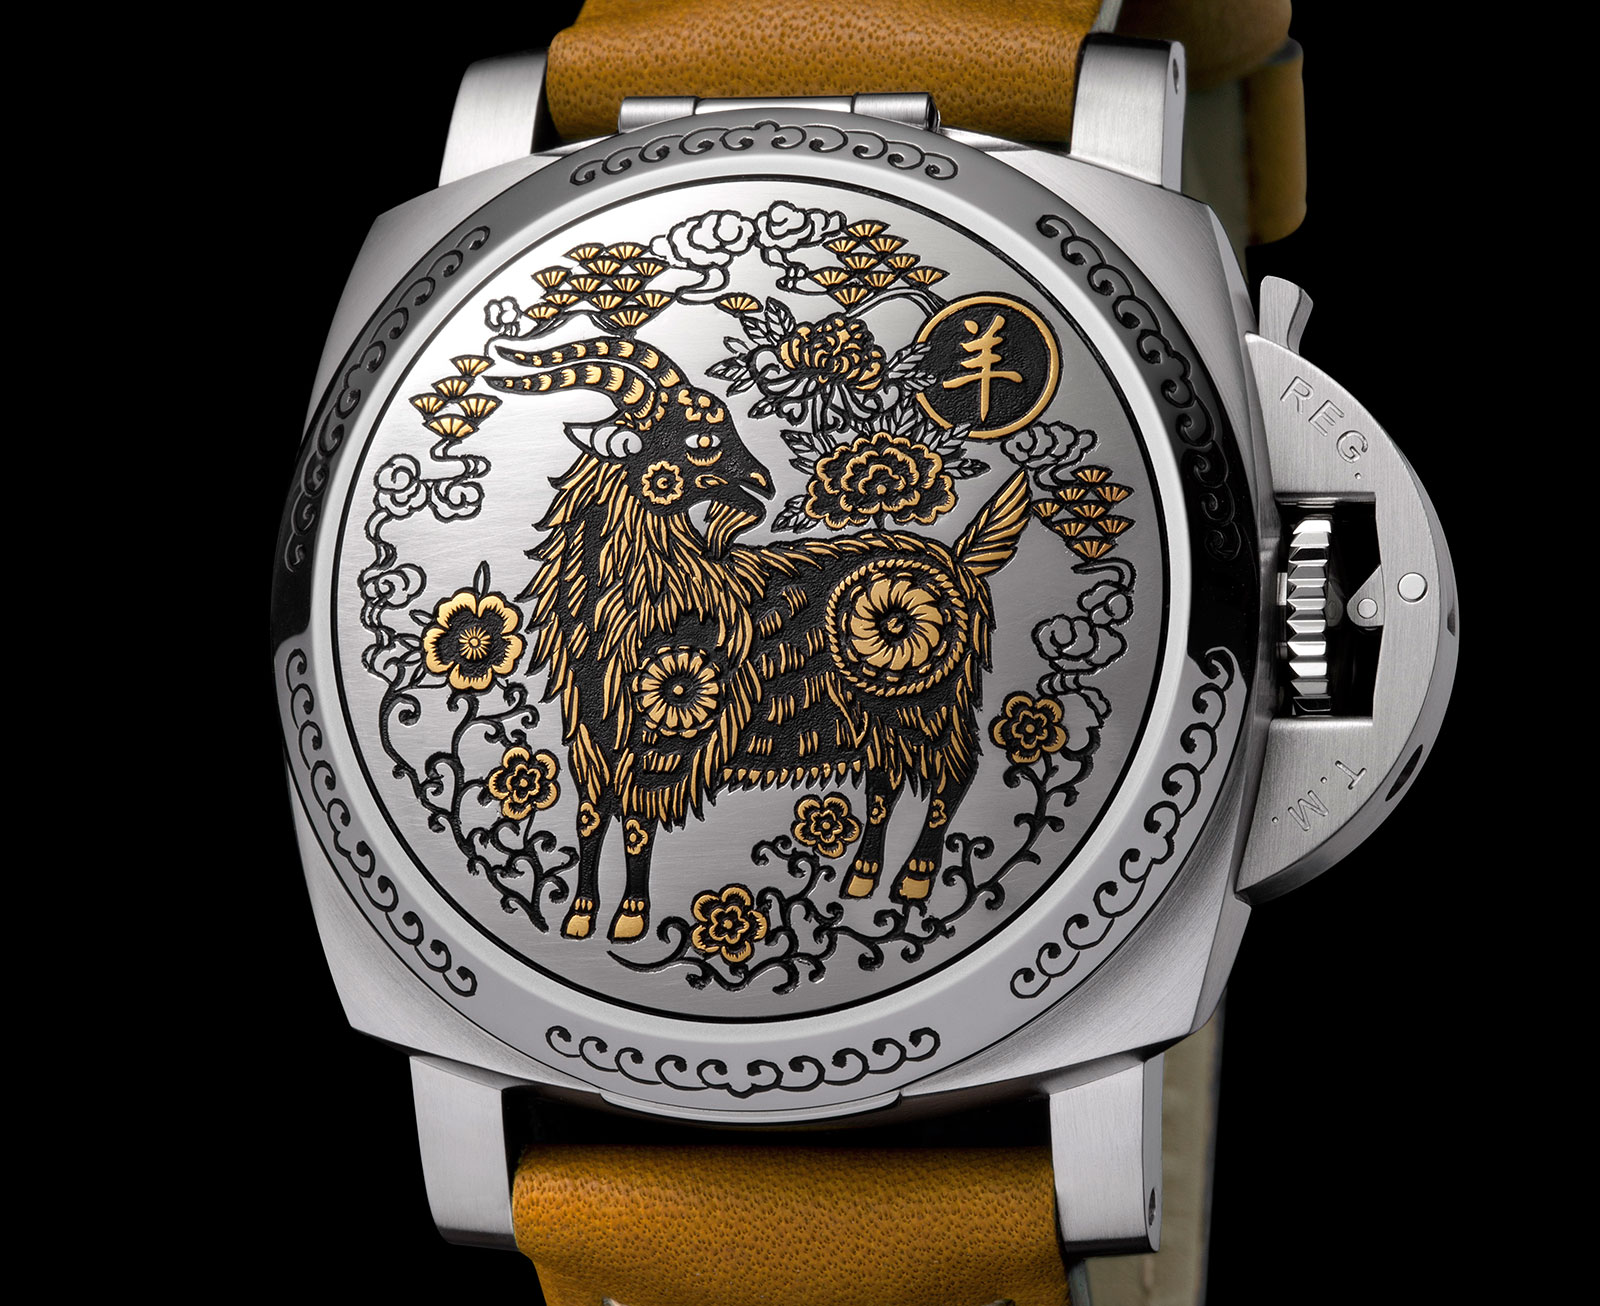 Panerai-Luminor-1950-Sealand-Year-of-the-Goat-PAM848-7